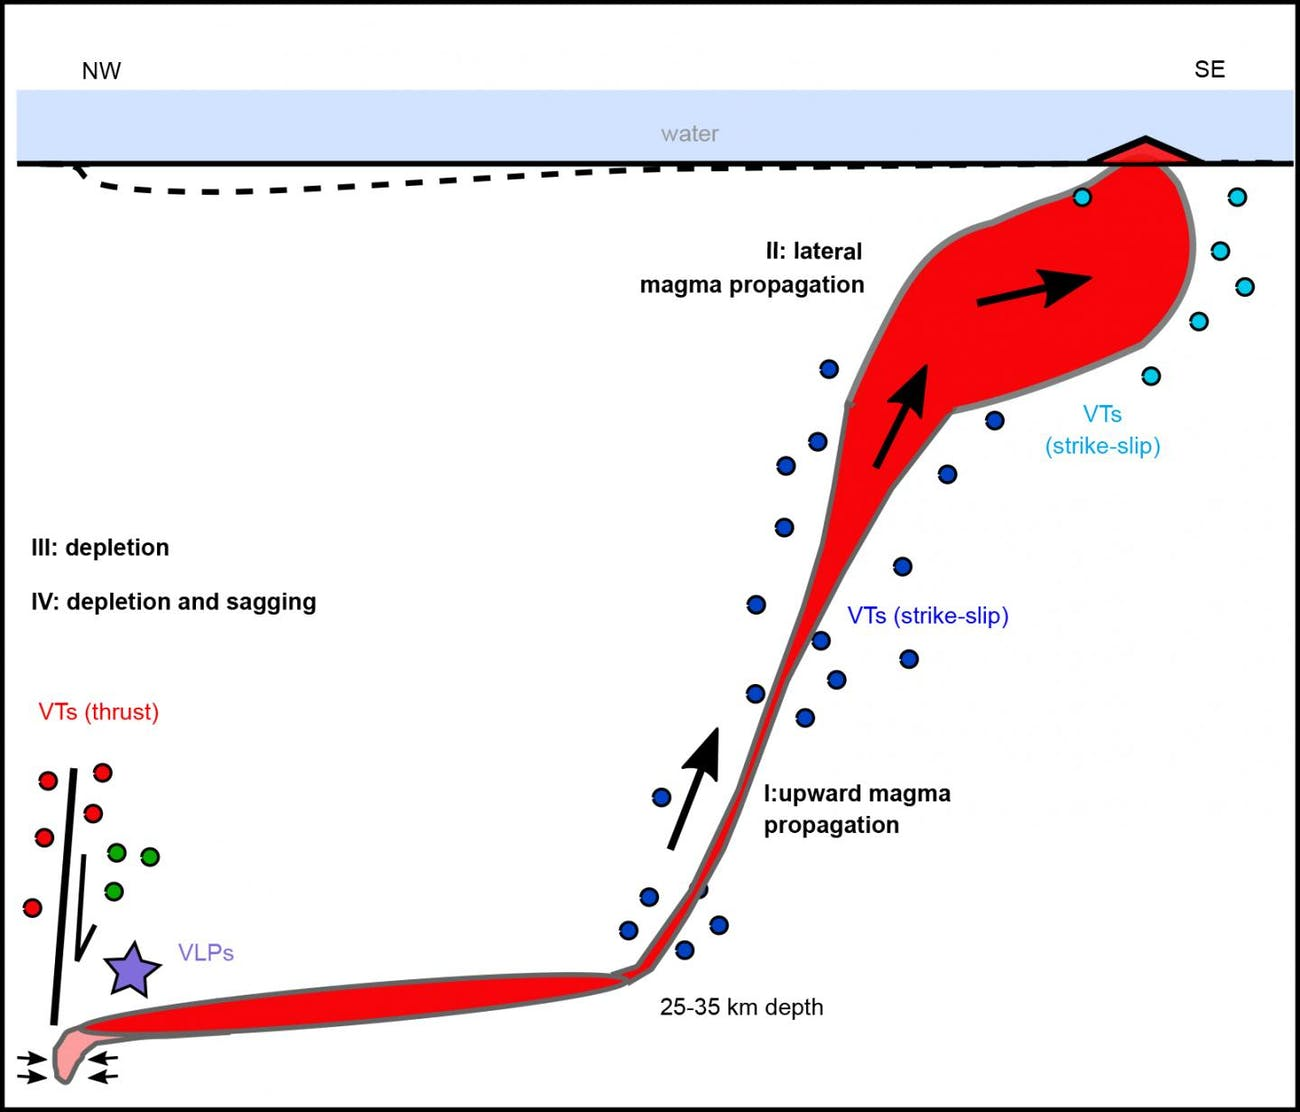 Sketch of the deep magma reservoir and magma upward path to form a new submarine volcano. Different types of seismic and surface deformation accompany the four identified phases of the unrest.